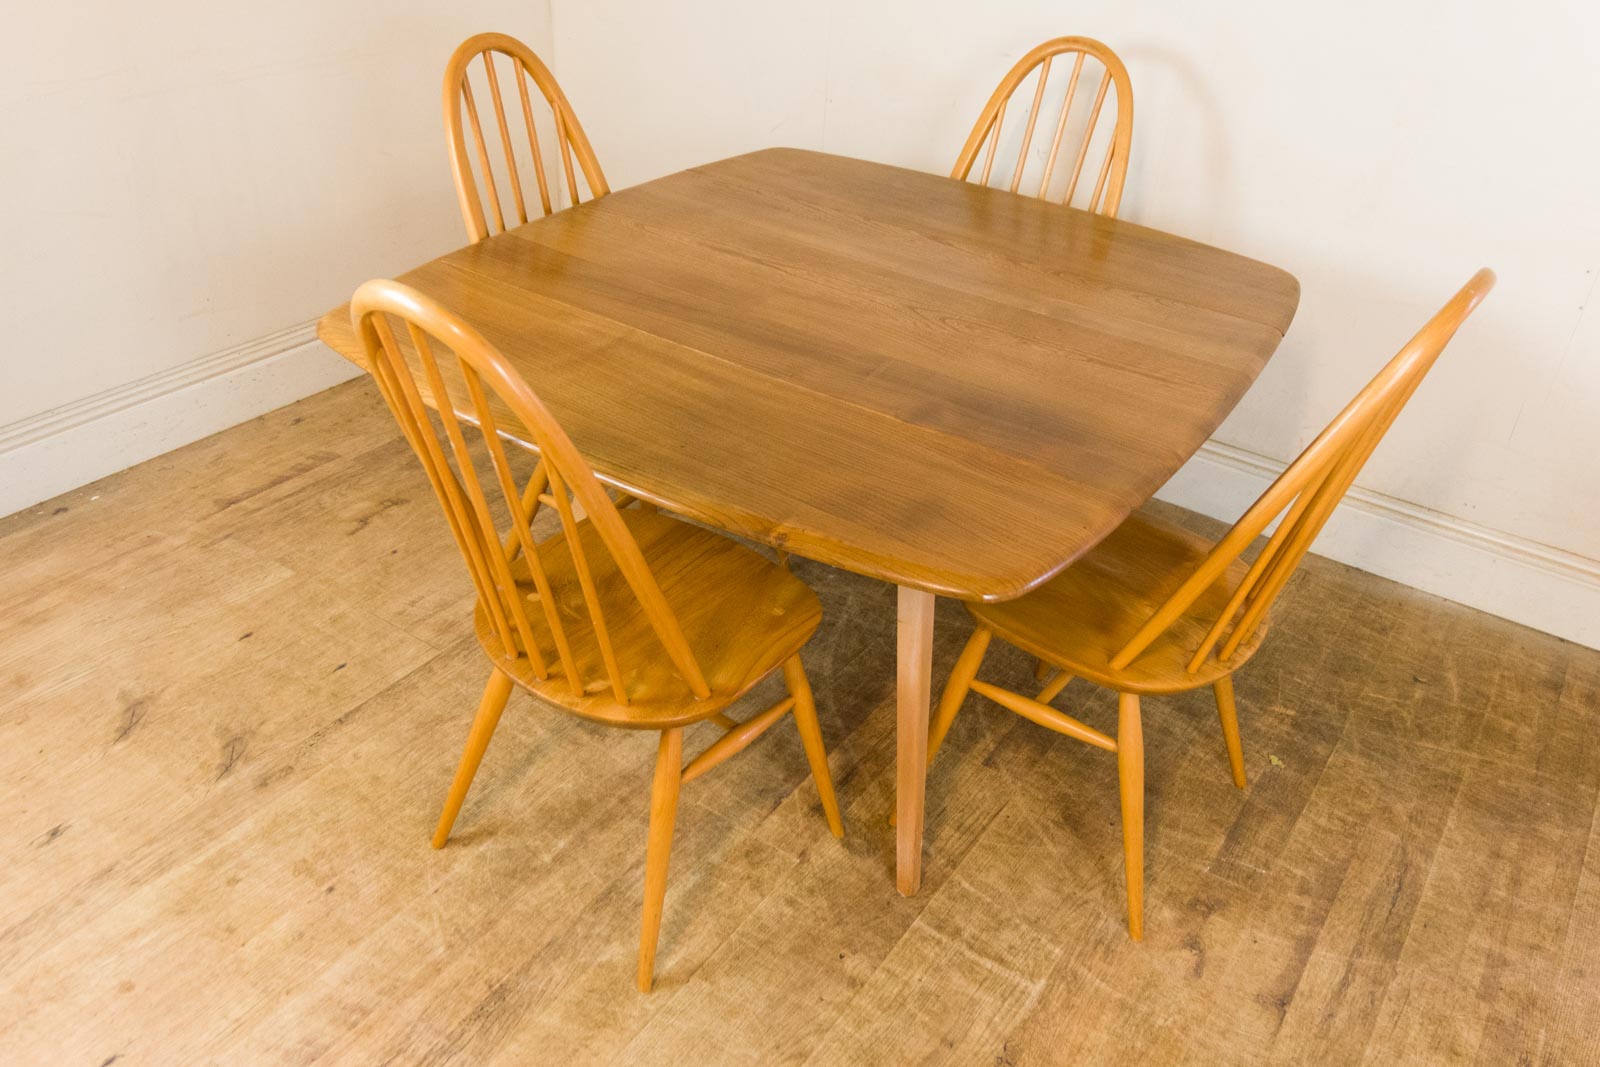 Vintage Retro Ercol Light Elm Drop Leaf Dining Table and 4  : HV201110 4 from www.ebay.co.uk size 1600 x 1067 jpeg 657kB